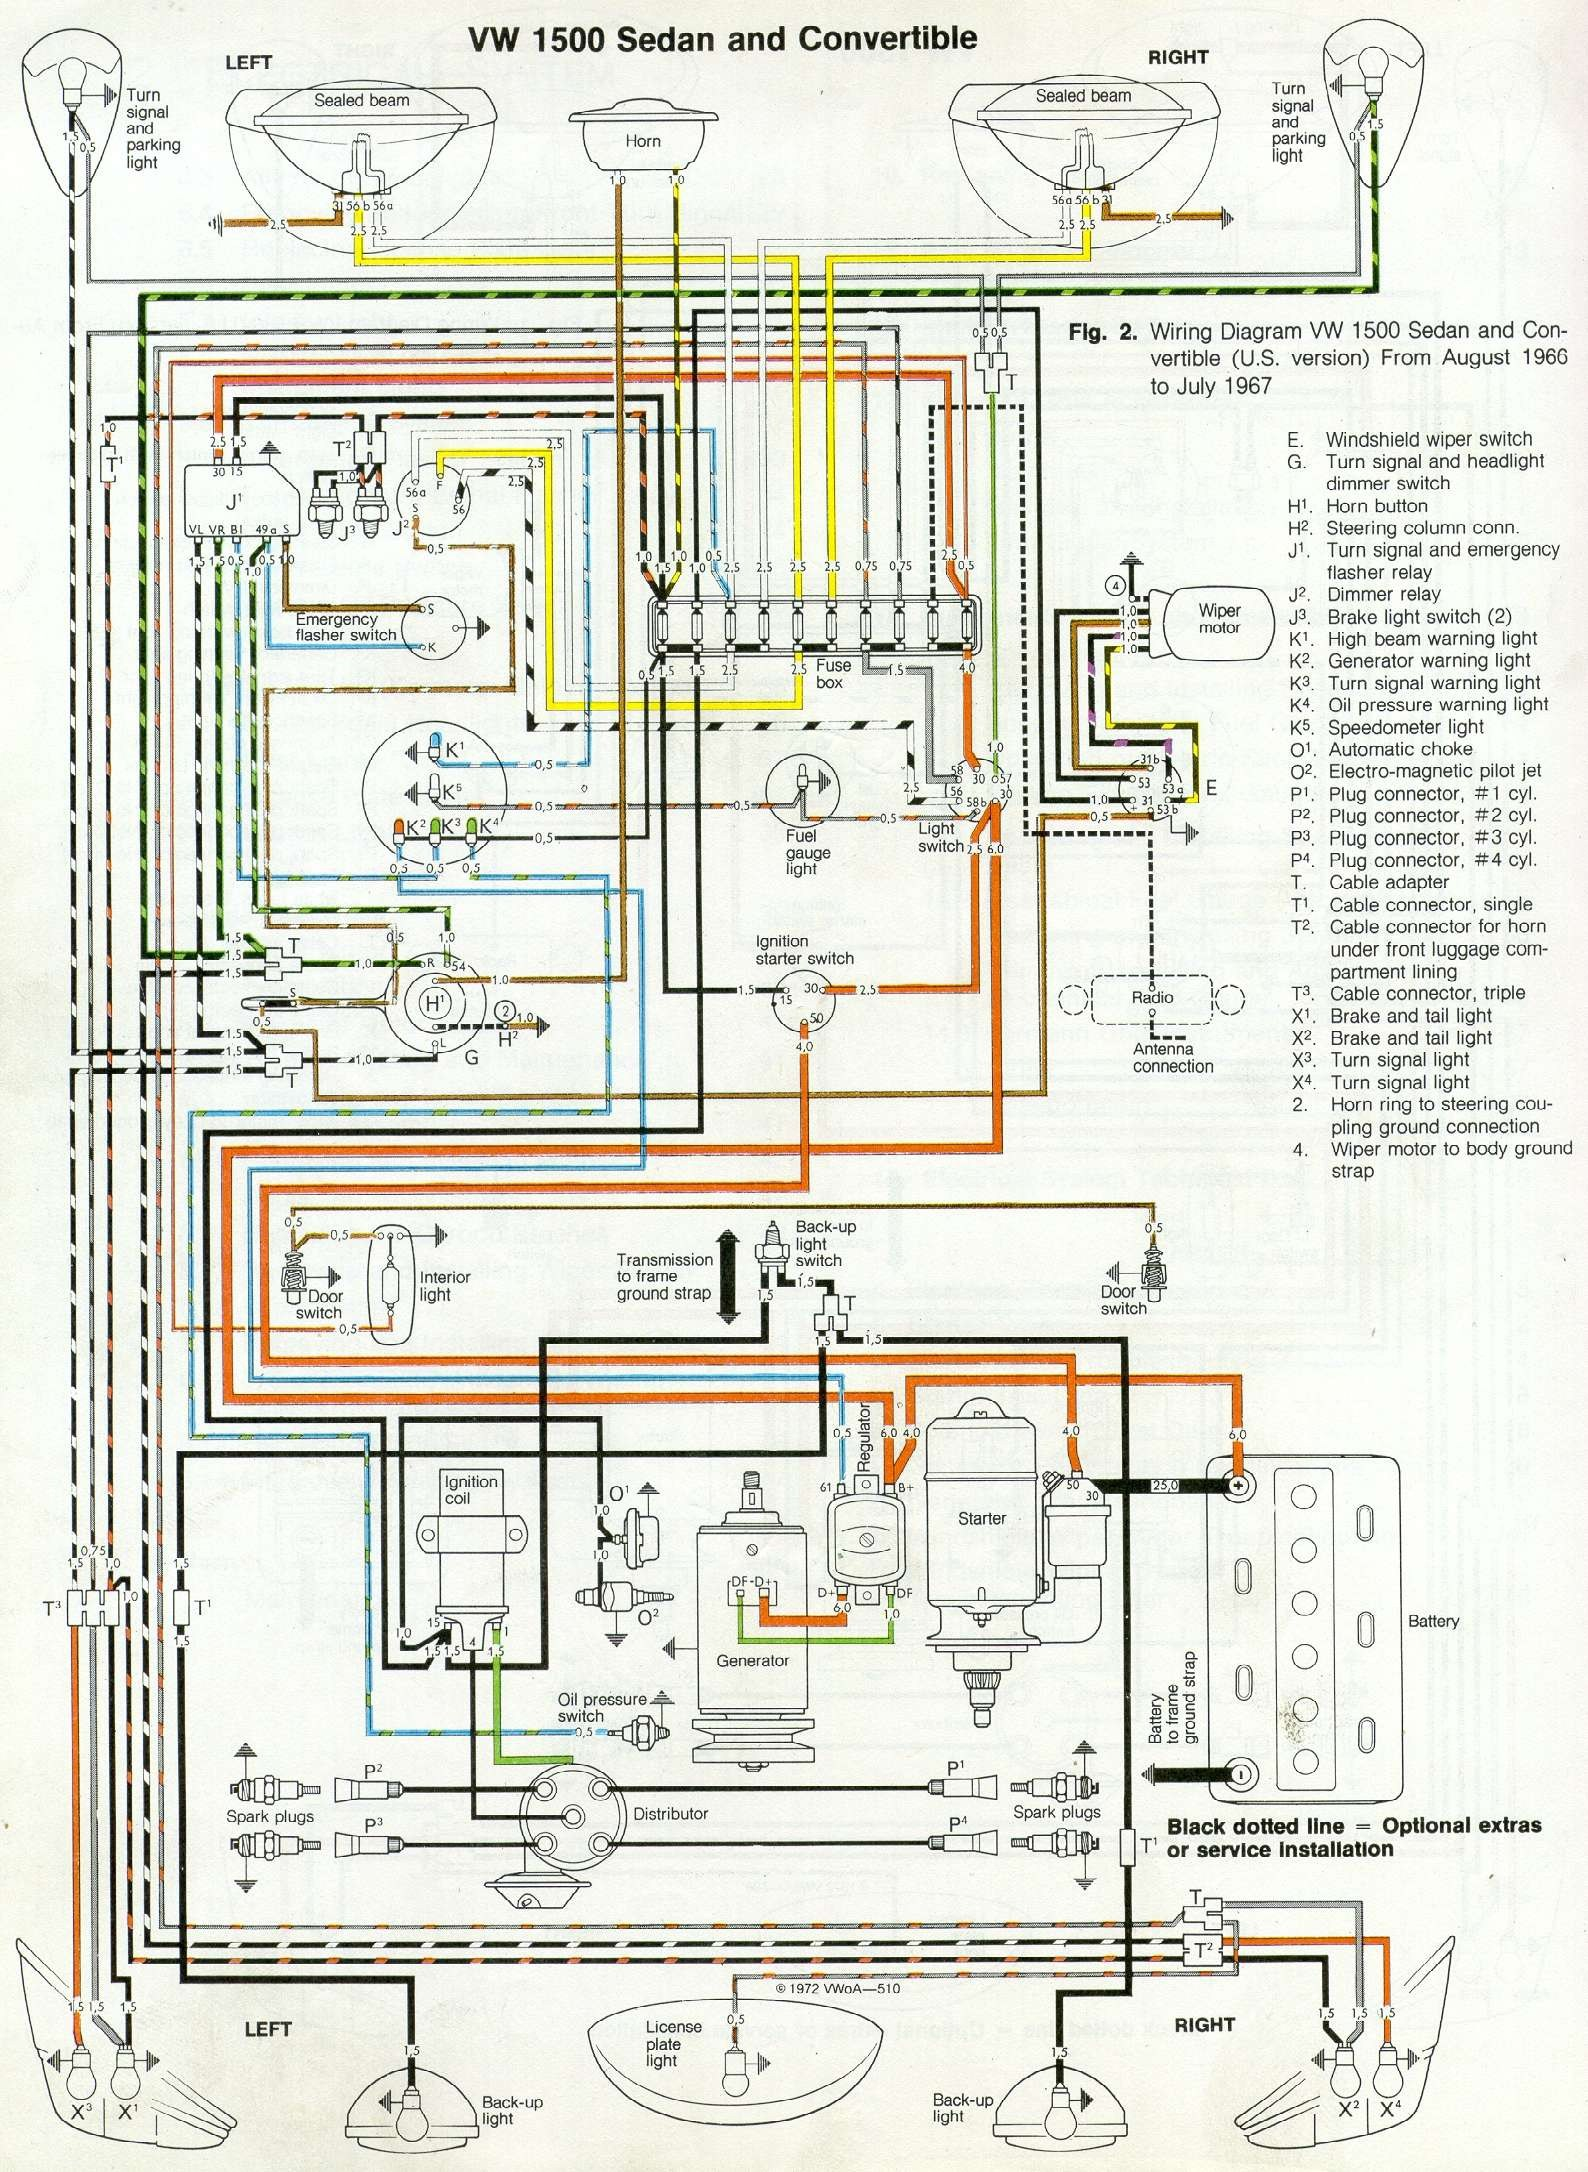 1969 vw bug dashboard wiring best wiring library Volkswagen 1969 Wiring 1966 vw wiring diagram wiring diagram data 1969 vw bug dashboard wiring vw beetle wiring schema